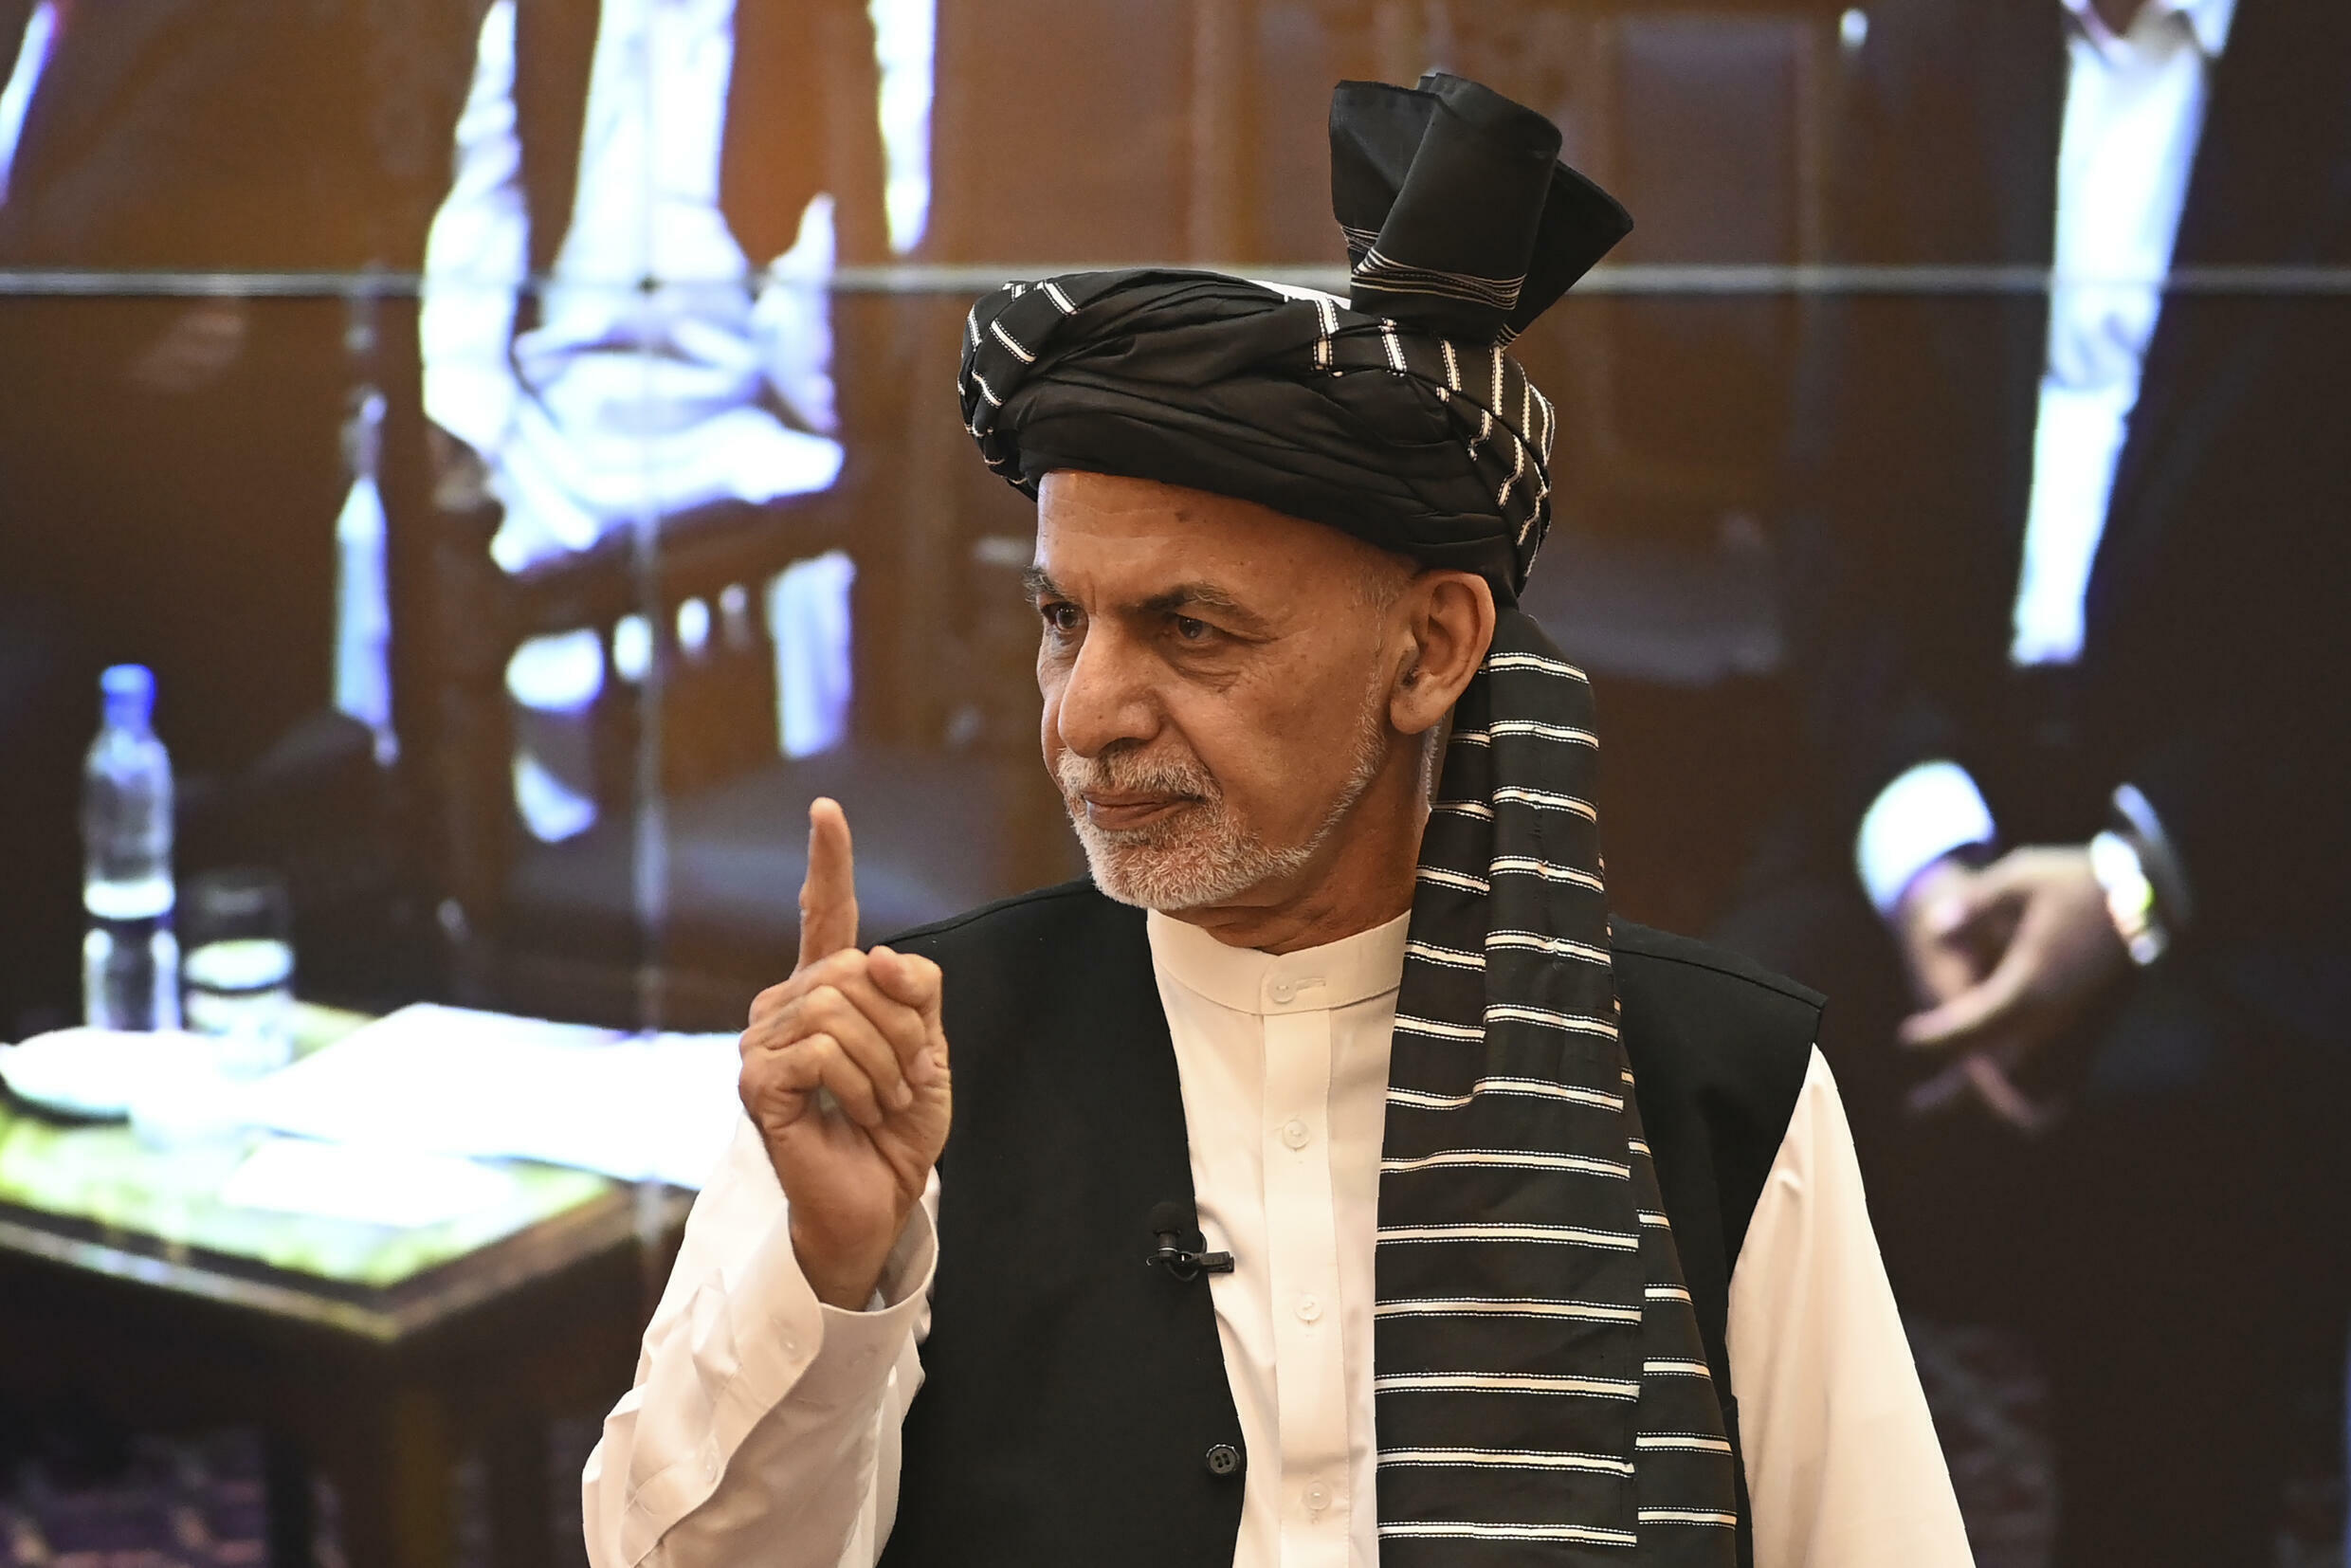 Afghan President Ashraf Ghani fled Afghanistan as the Taliban reached Kabul, effectively ceding power to the insurgents